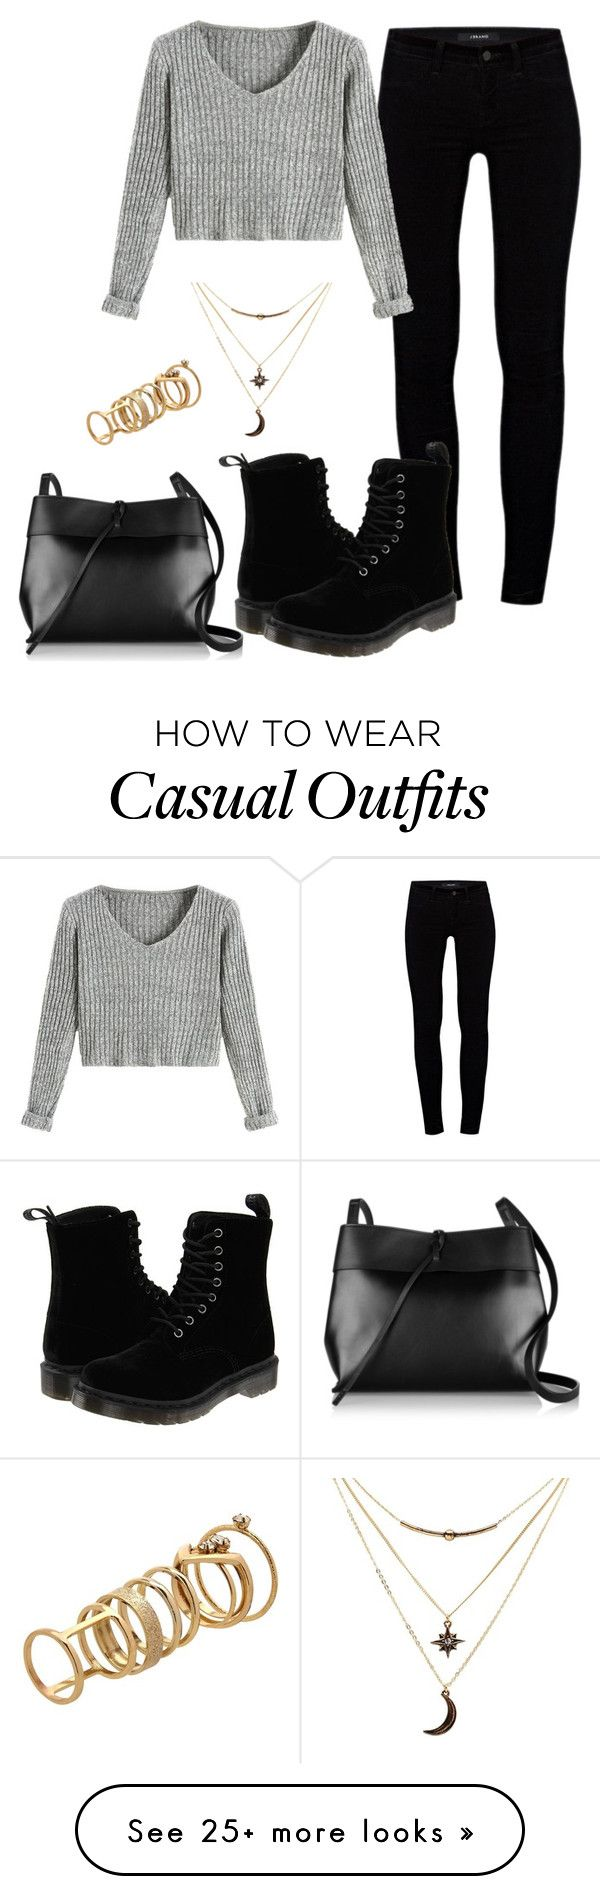 """Casual"" by nikke9doors on Polyvore featuring J Brand, Dr. Martens, Kara, Charlotte Russe and Lipsy"